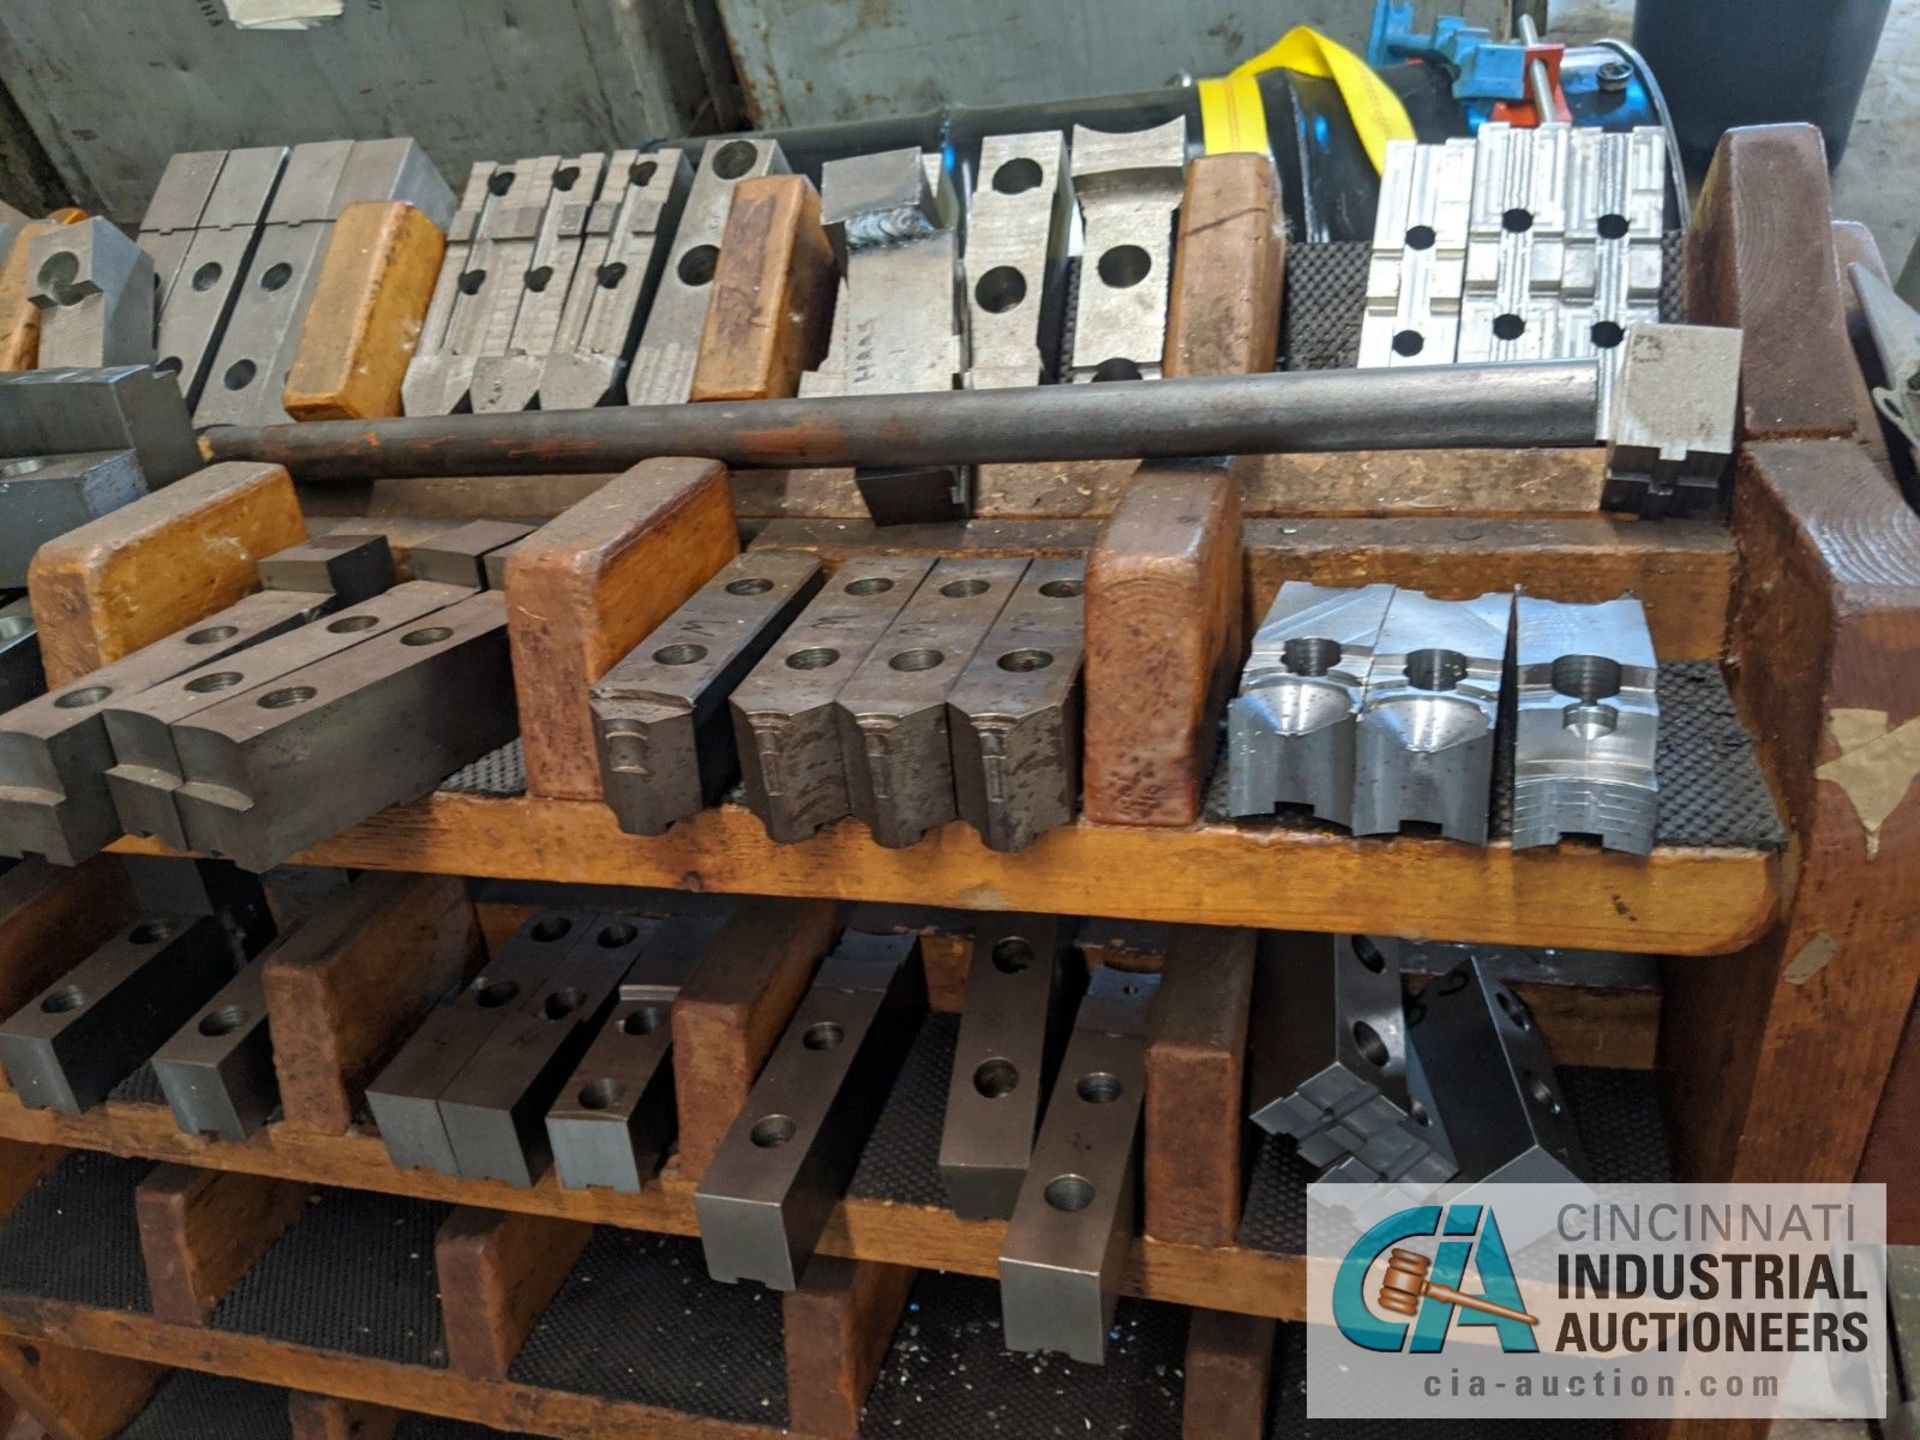 (LOT) RACK WITH CHUCK JAWS - Image 2 of 3